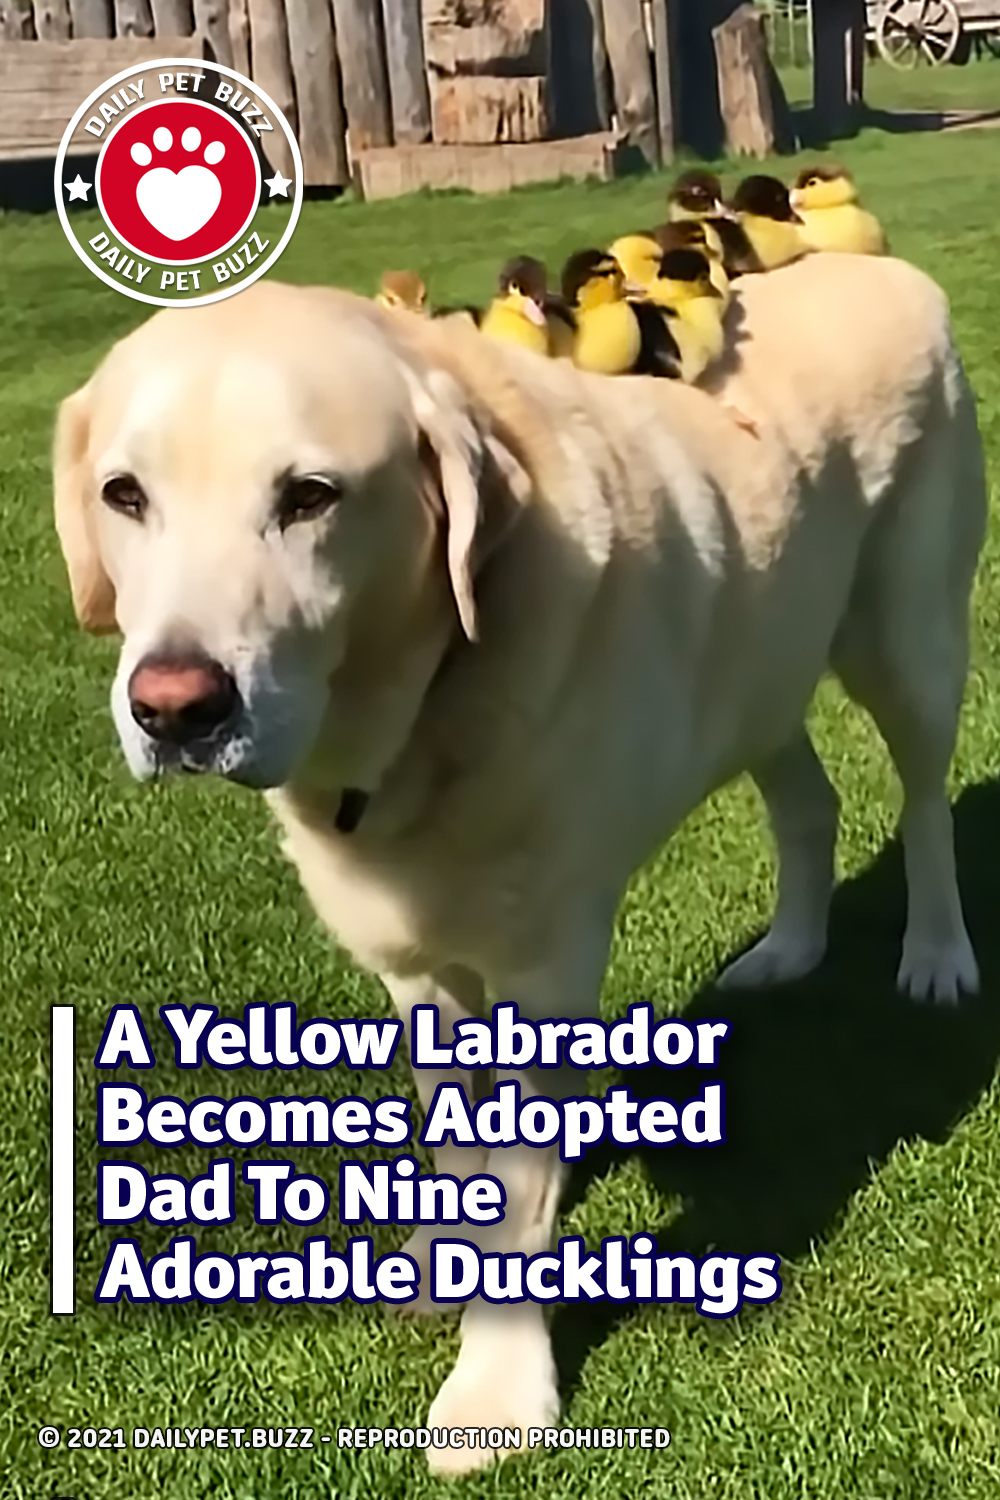 A Yellow Labrador Becomes Adopted Dad To Nine Adorable Ducklings